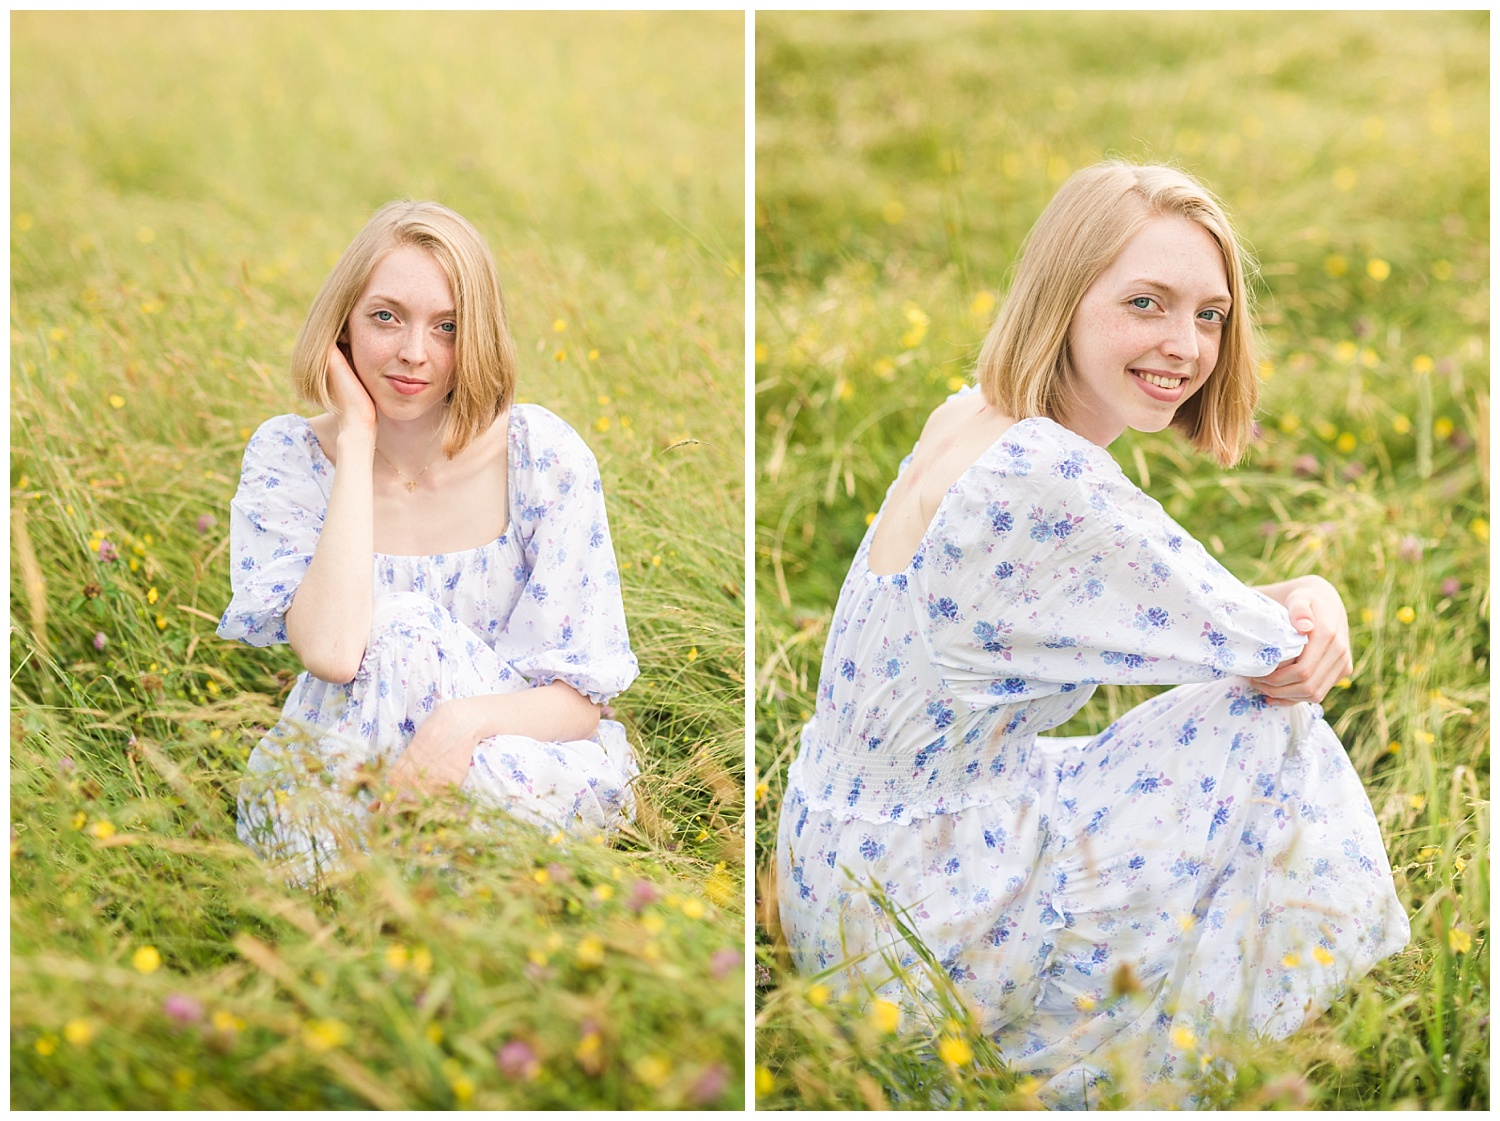 chassell mi senior pictures in grassy summer field